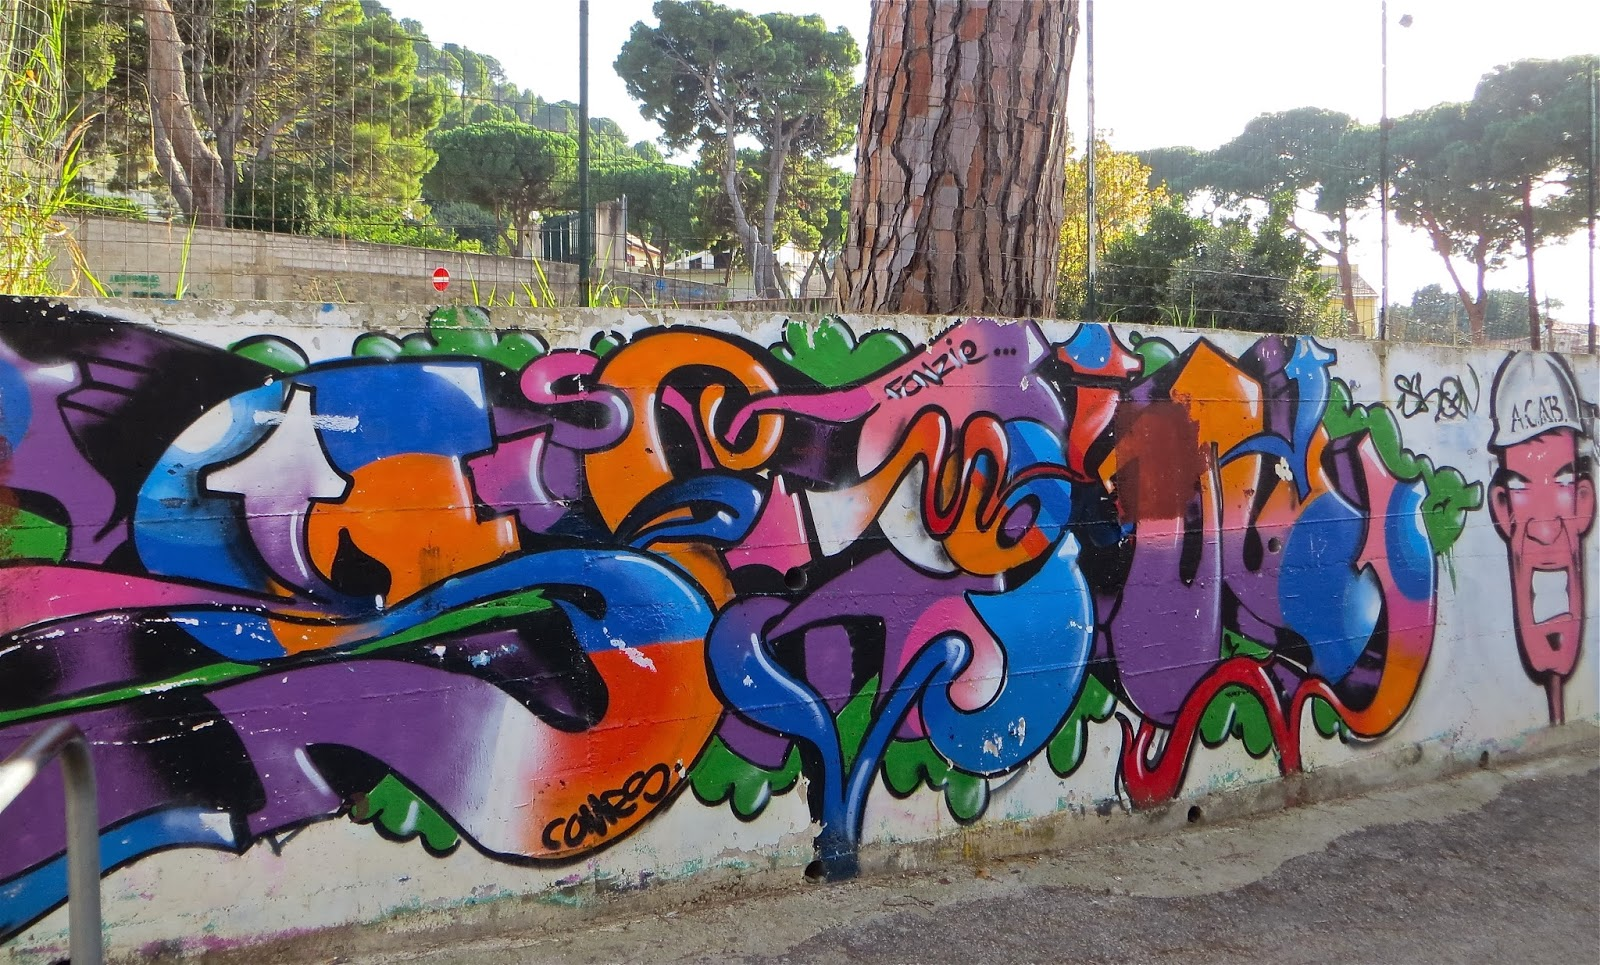 the art of graffiti or vandalism Examples include at least some graffiti art norman mailer glorified the art of vandalism in his essay the faith of graffiti, which likened tagging in new york.